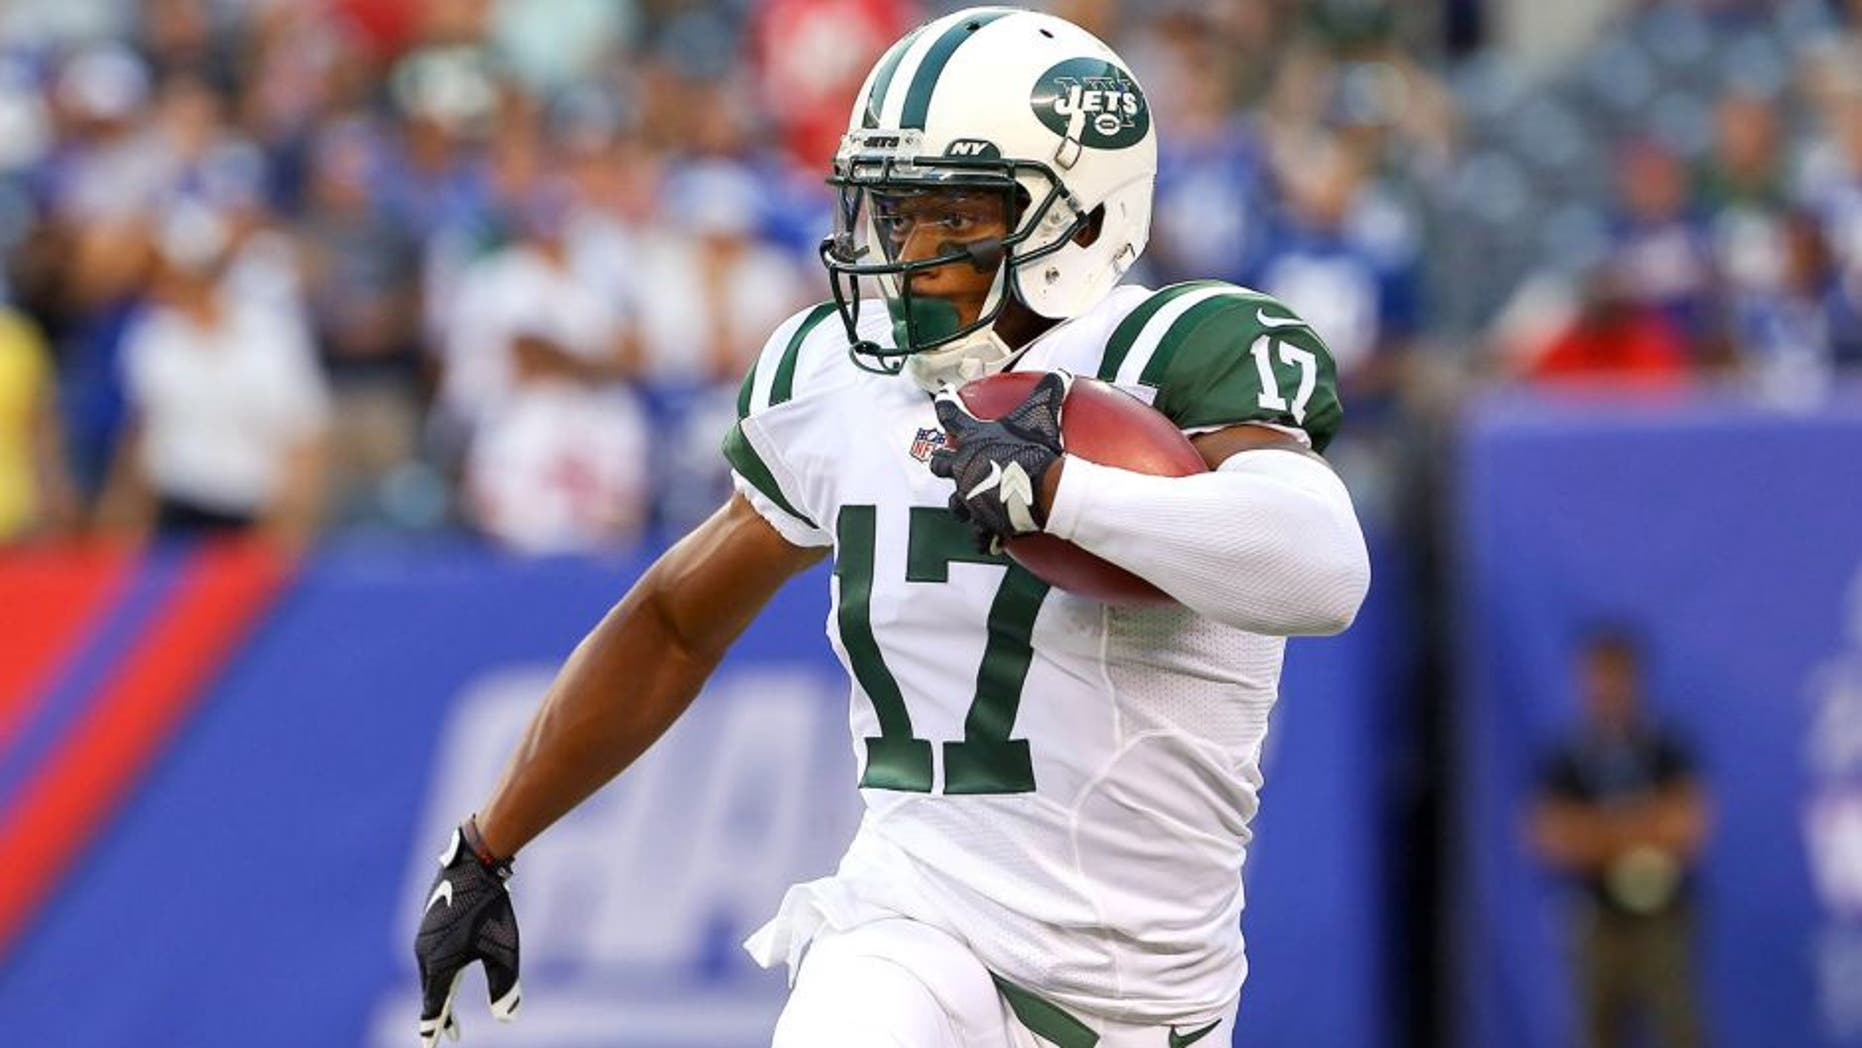 Aug 29, 2015; East Rutherford, NJ, USA; New York Jets wide receiver Chris Owusu (17) returns the opening kickoff during the first half of their game against the New York Giants at MetLife Stadium. Mandatory Credit: Ed Mulholland-USA TODAY Sports